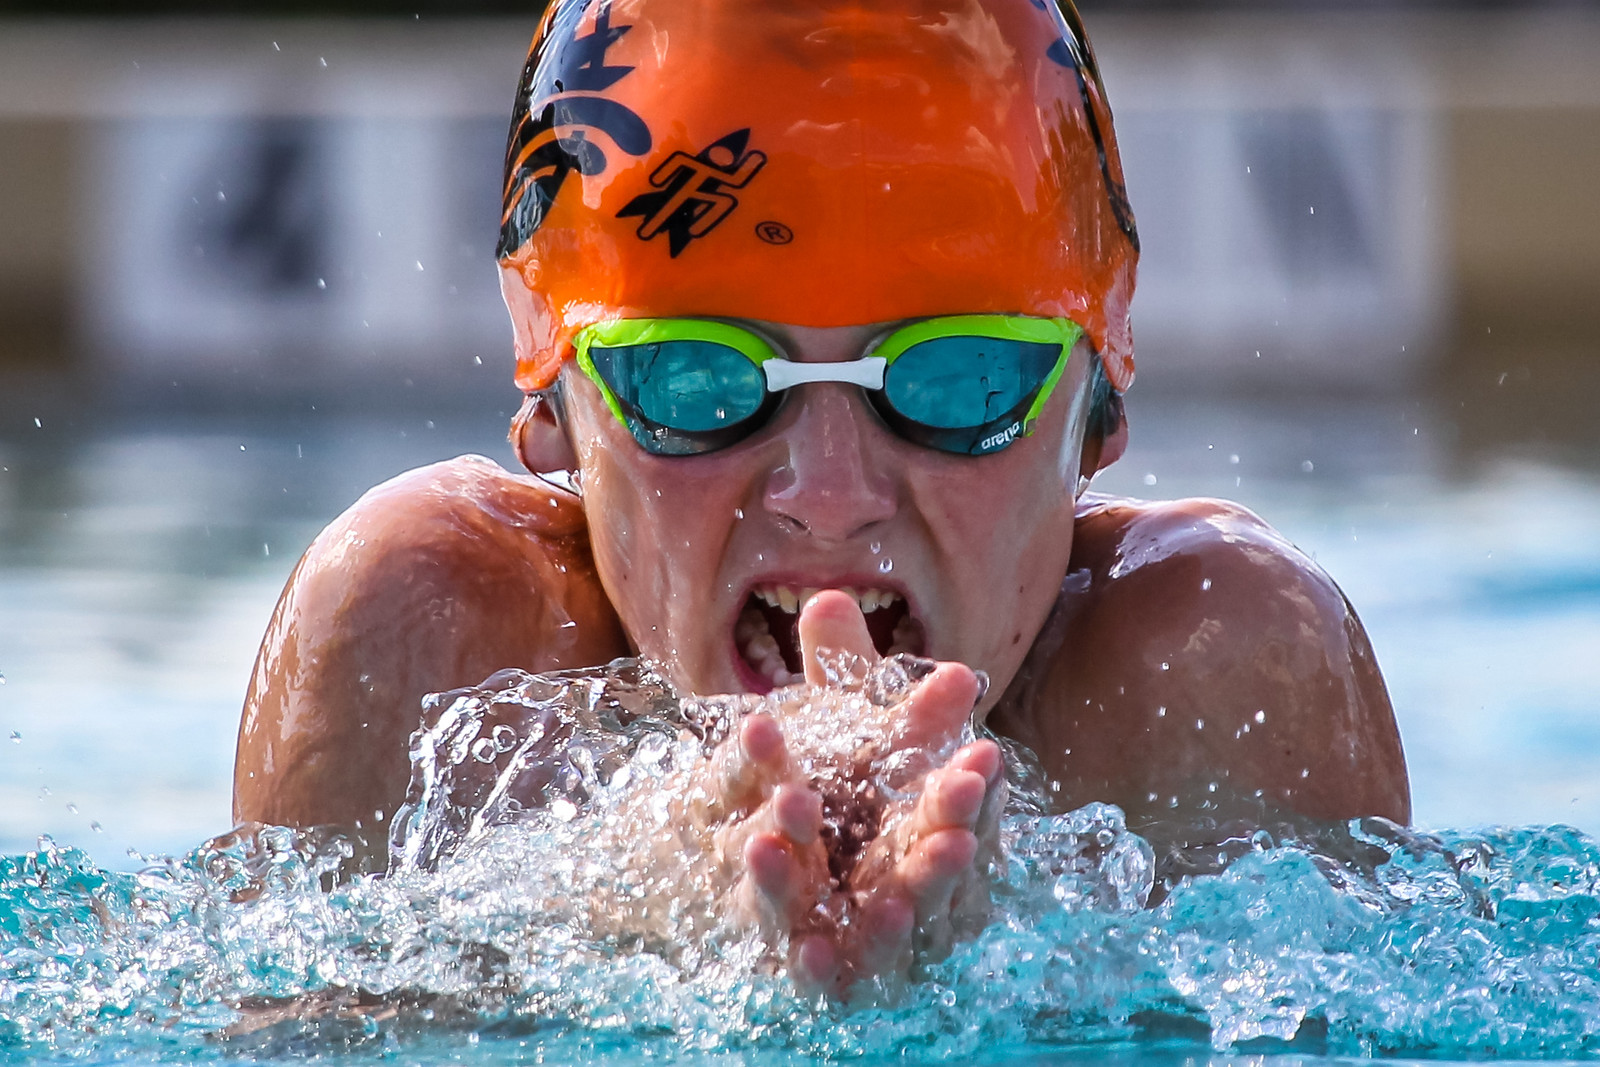 IMAGE: https://photos.smugmug.com/Sports/Swimming/2018-Seals-Action-Shots/Seals-2018-Full-Size/i-9jHDjVd/1/a9549c41/X3/A73X5422-X3.jpg